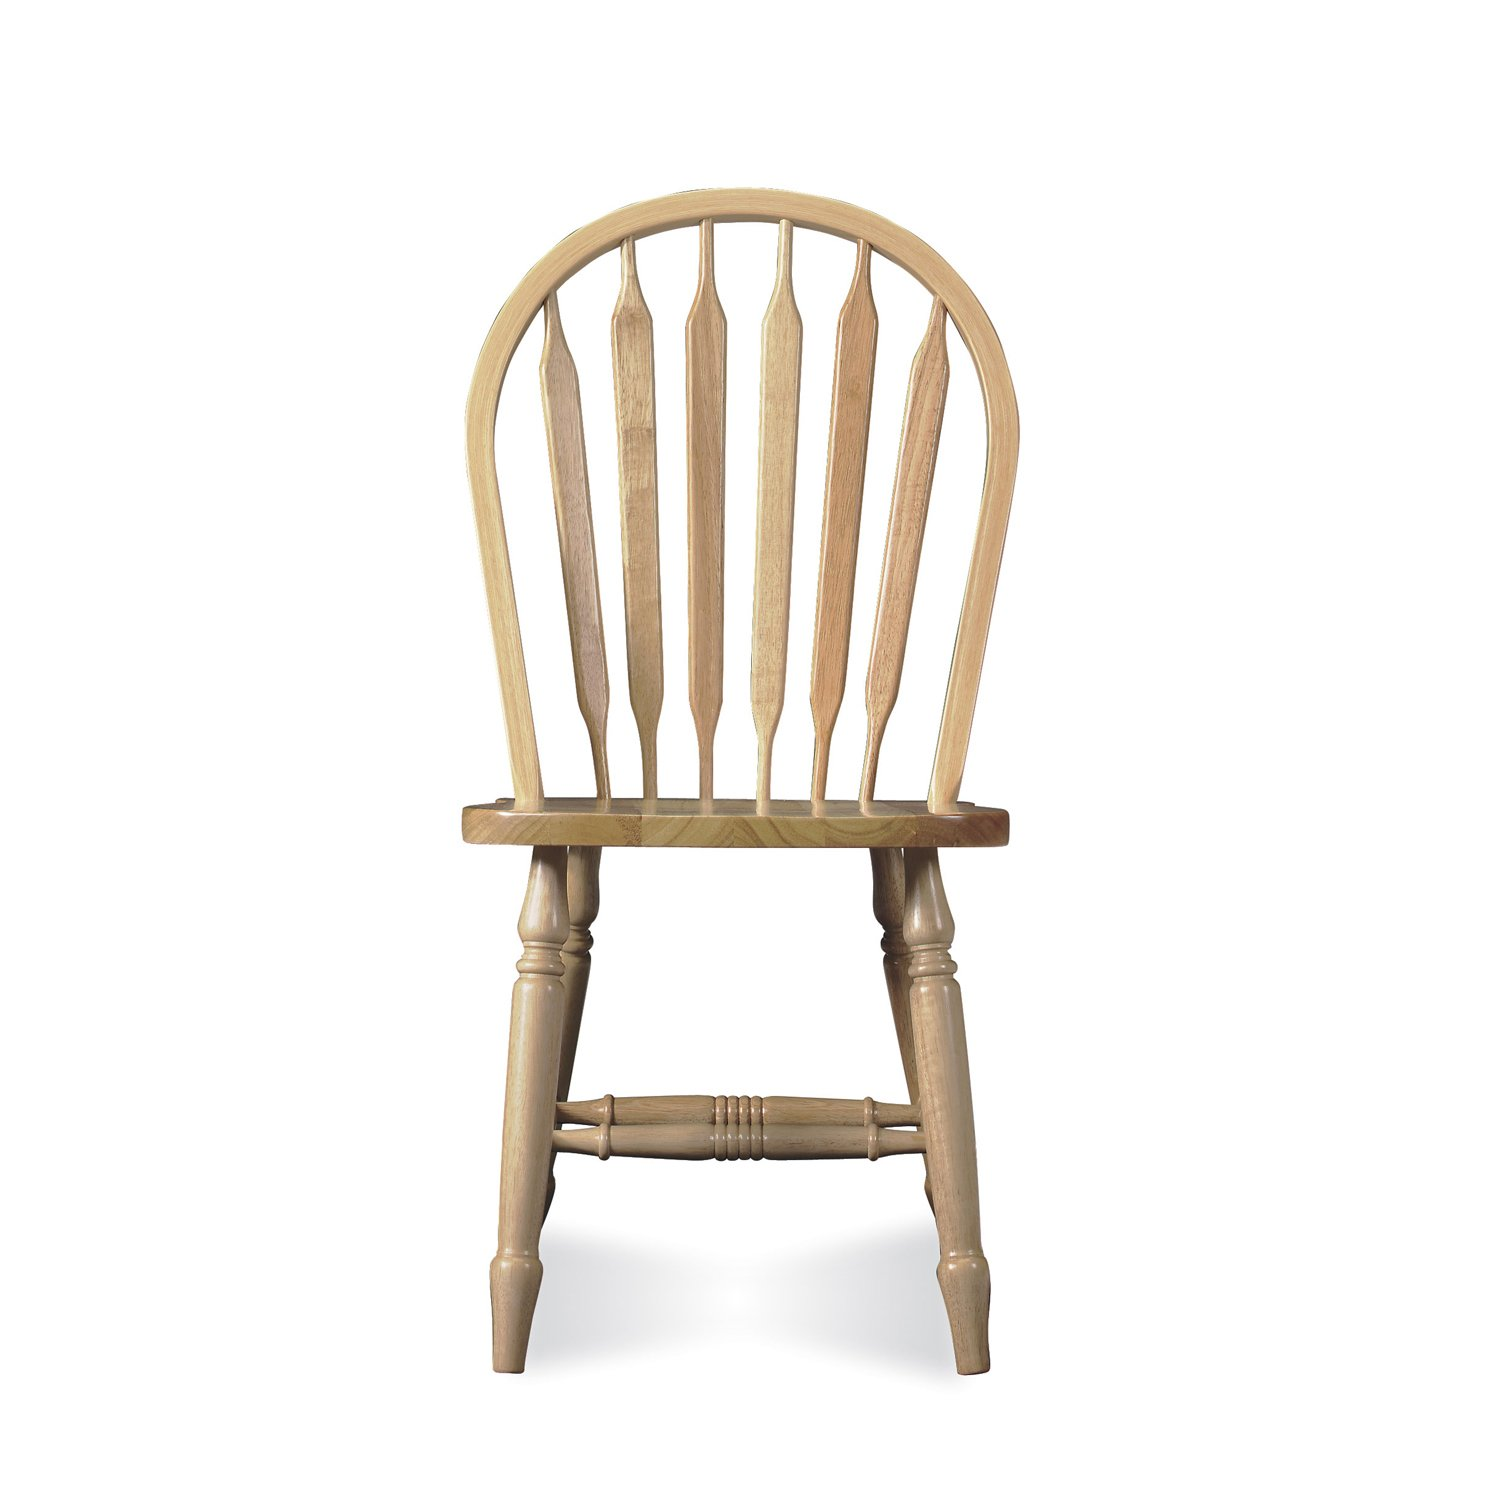 International Concepts C-213T Windsor Arrow Back Chair, Unfinished